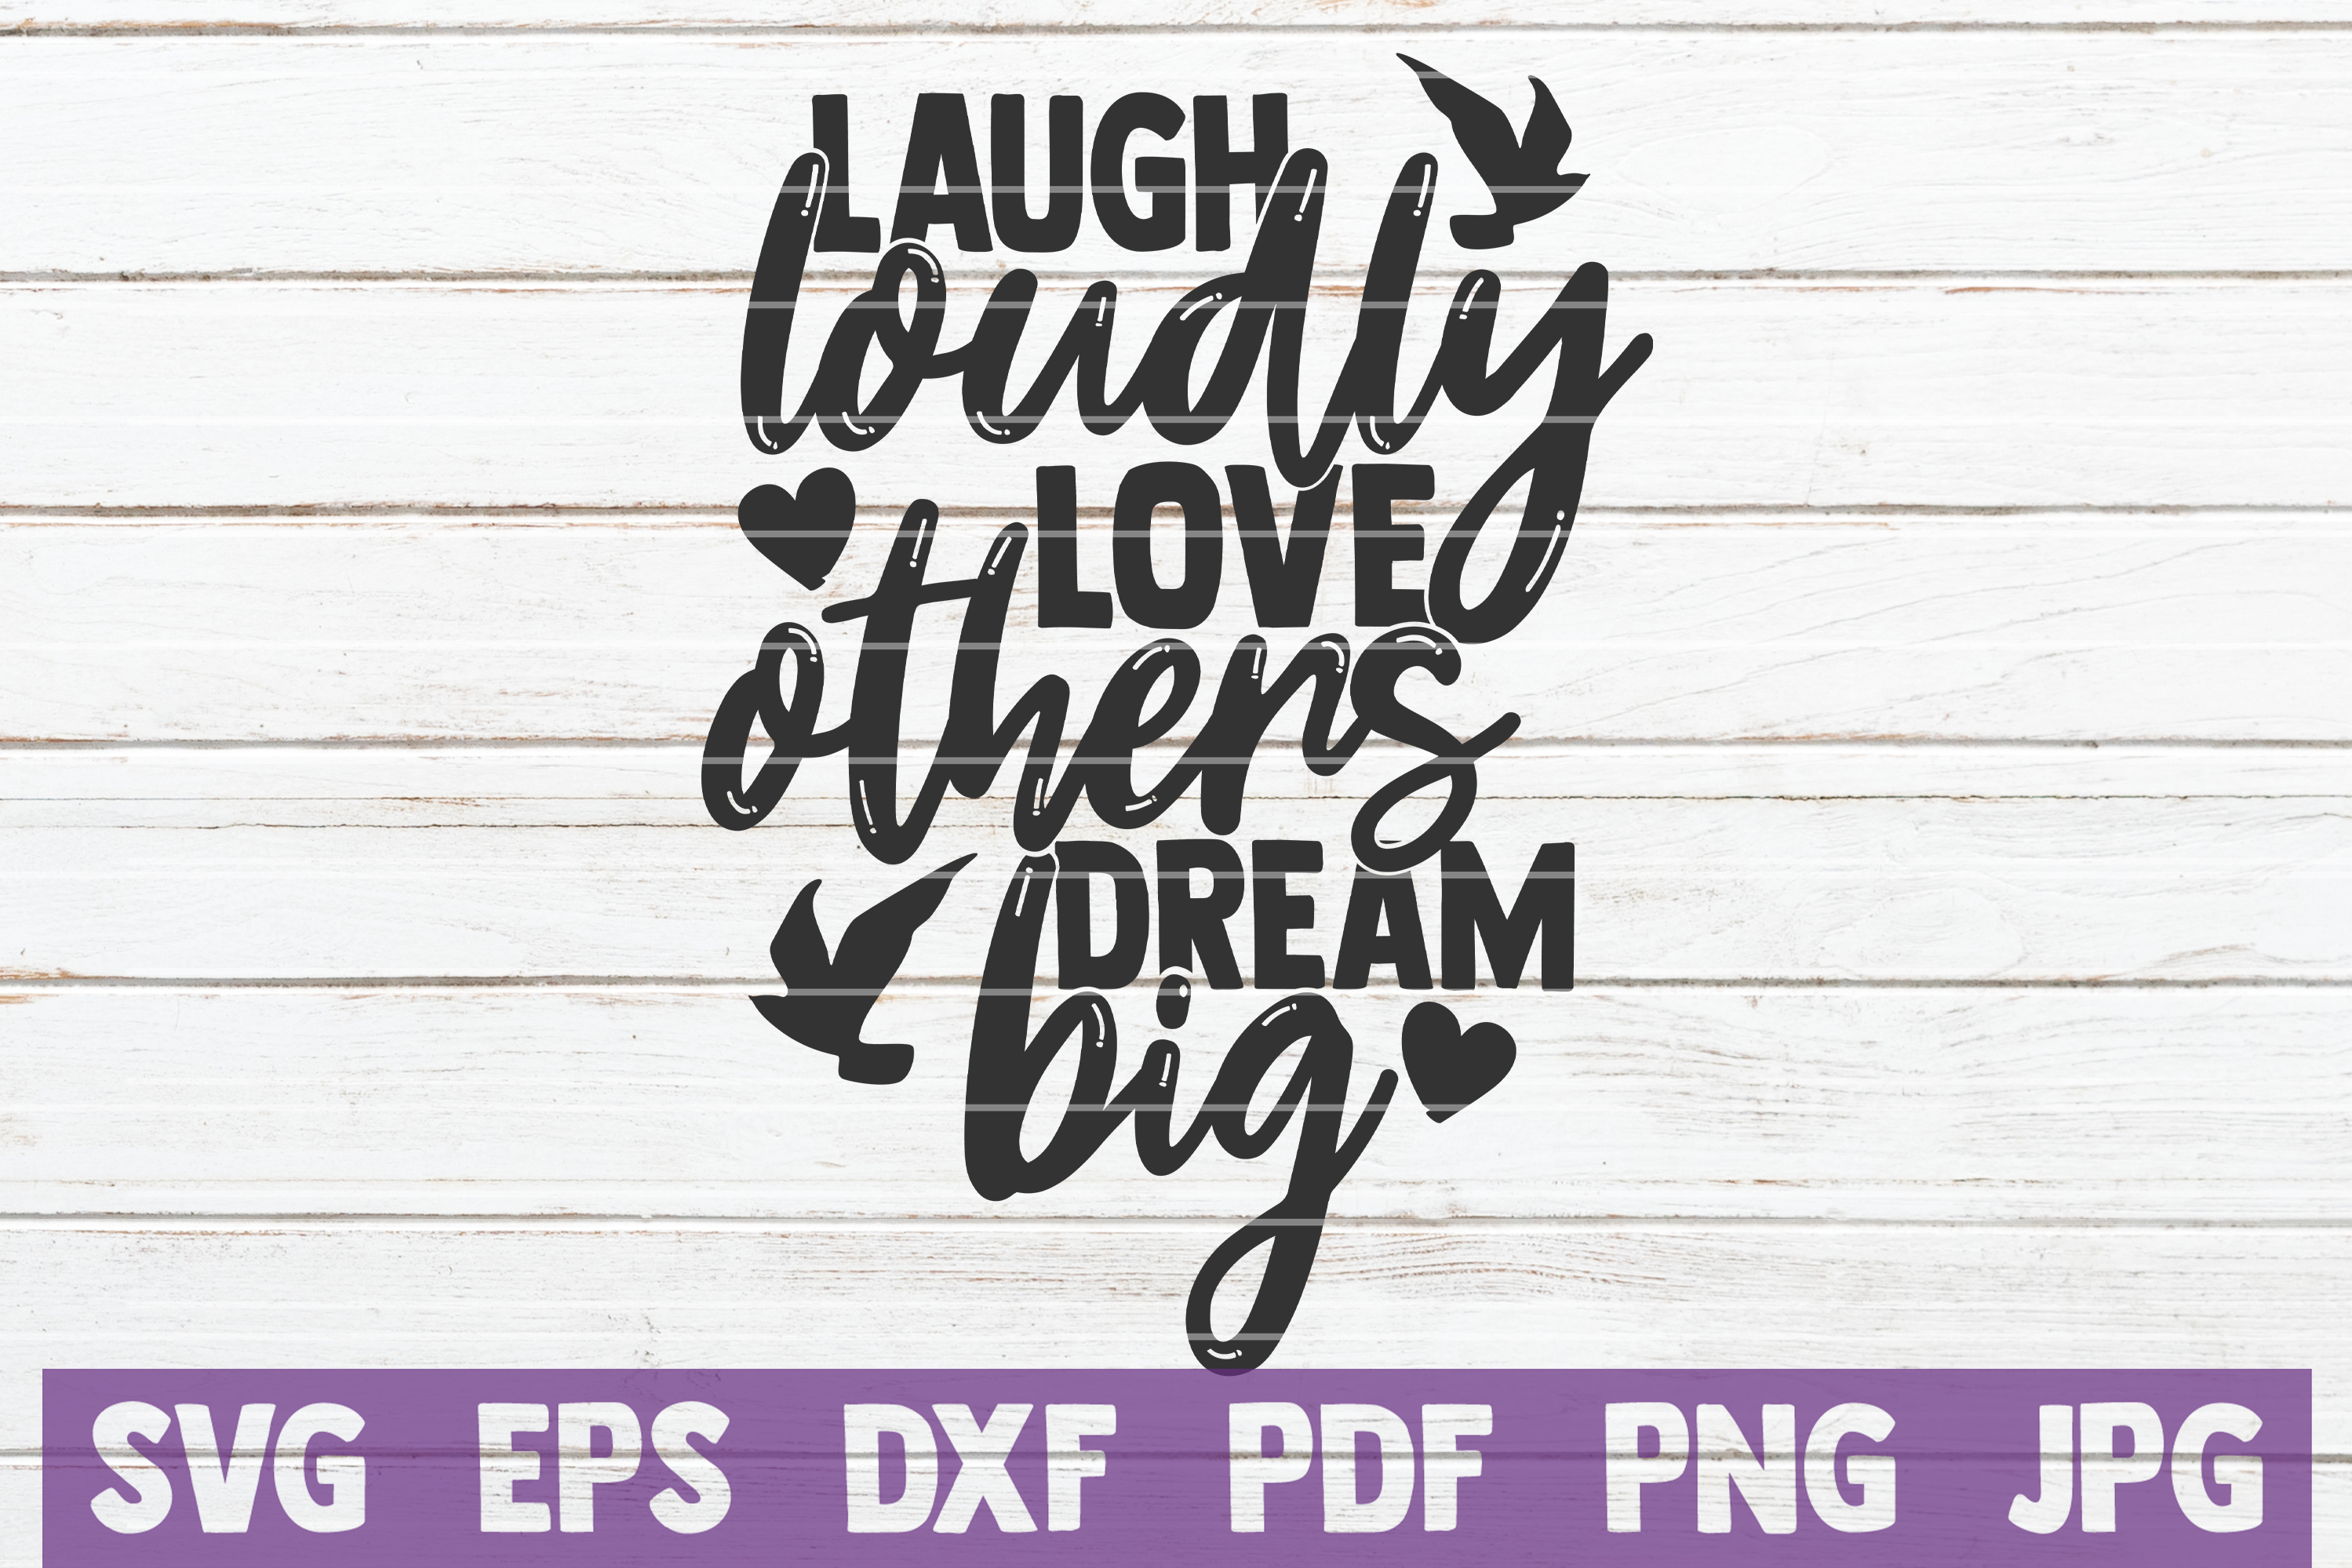 Download Free Laugh Loudly Love Others Dream Big Graphic By Mintymarshmallows for Cricut Explore, Silhouette and other cutting machines.